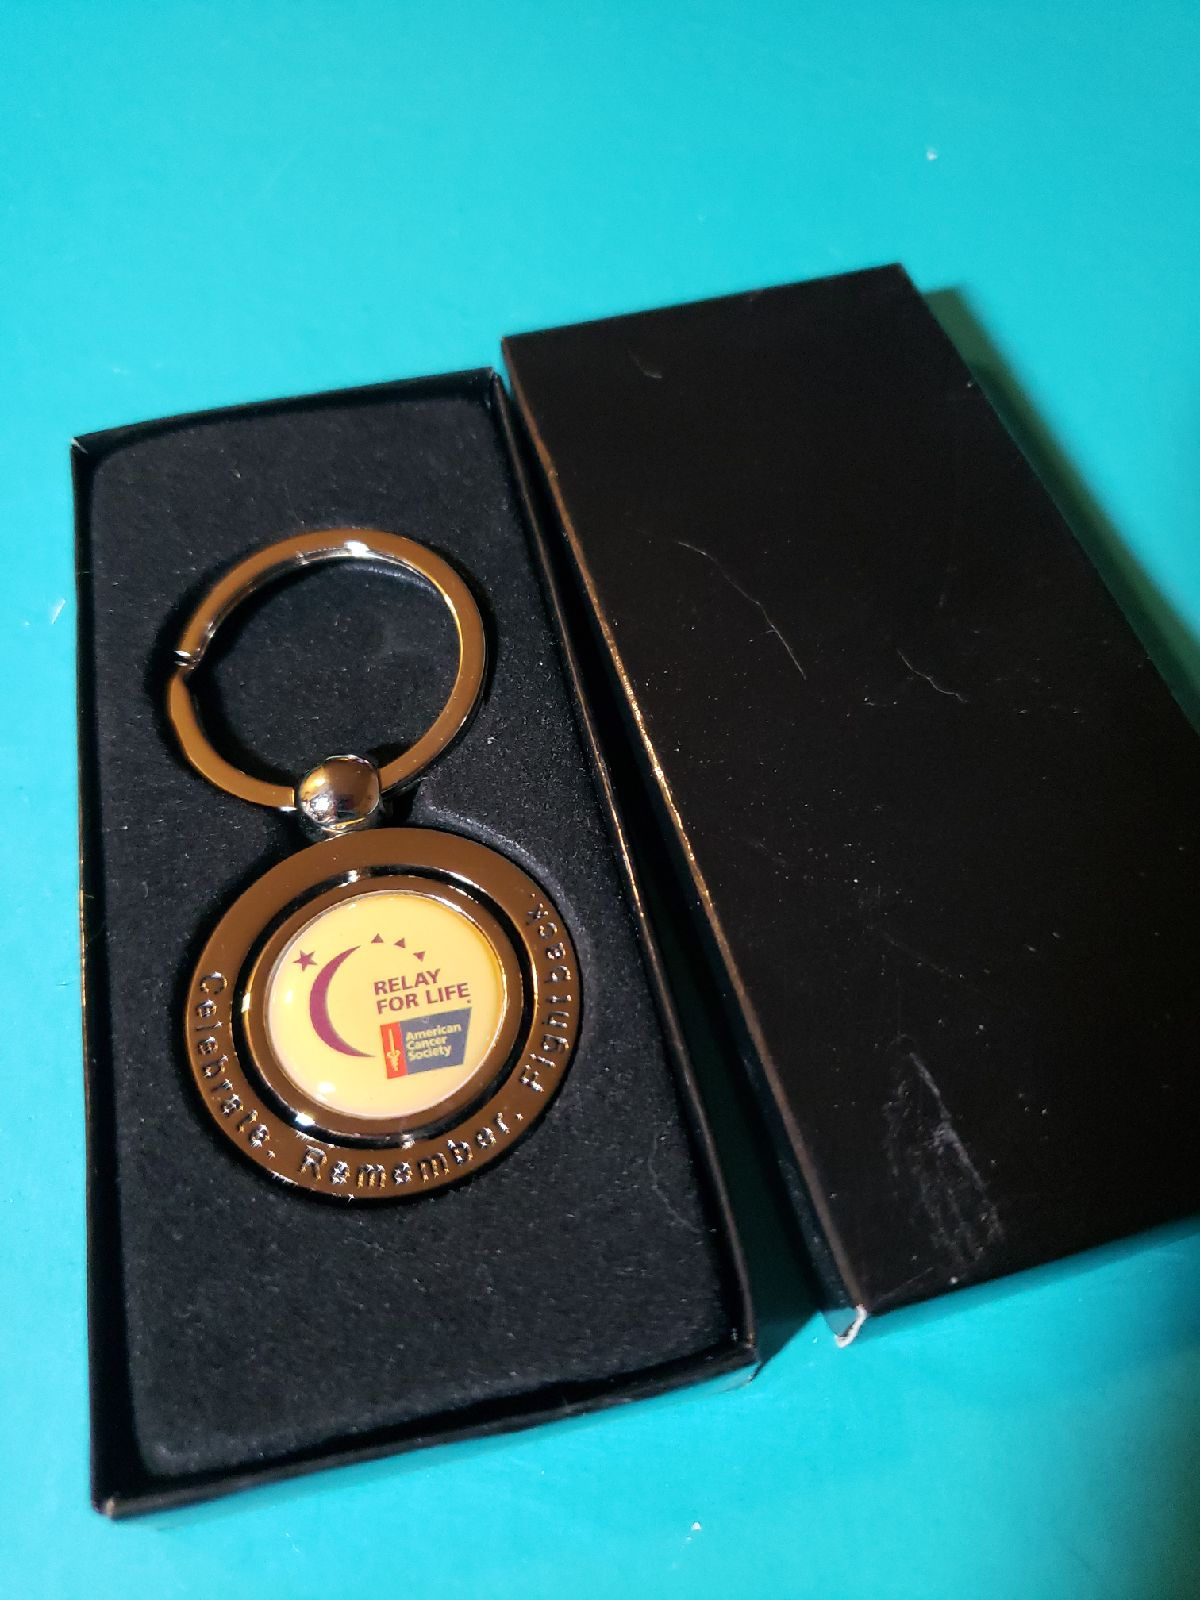 Relay for life key chain new